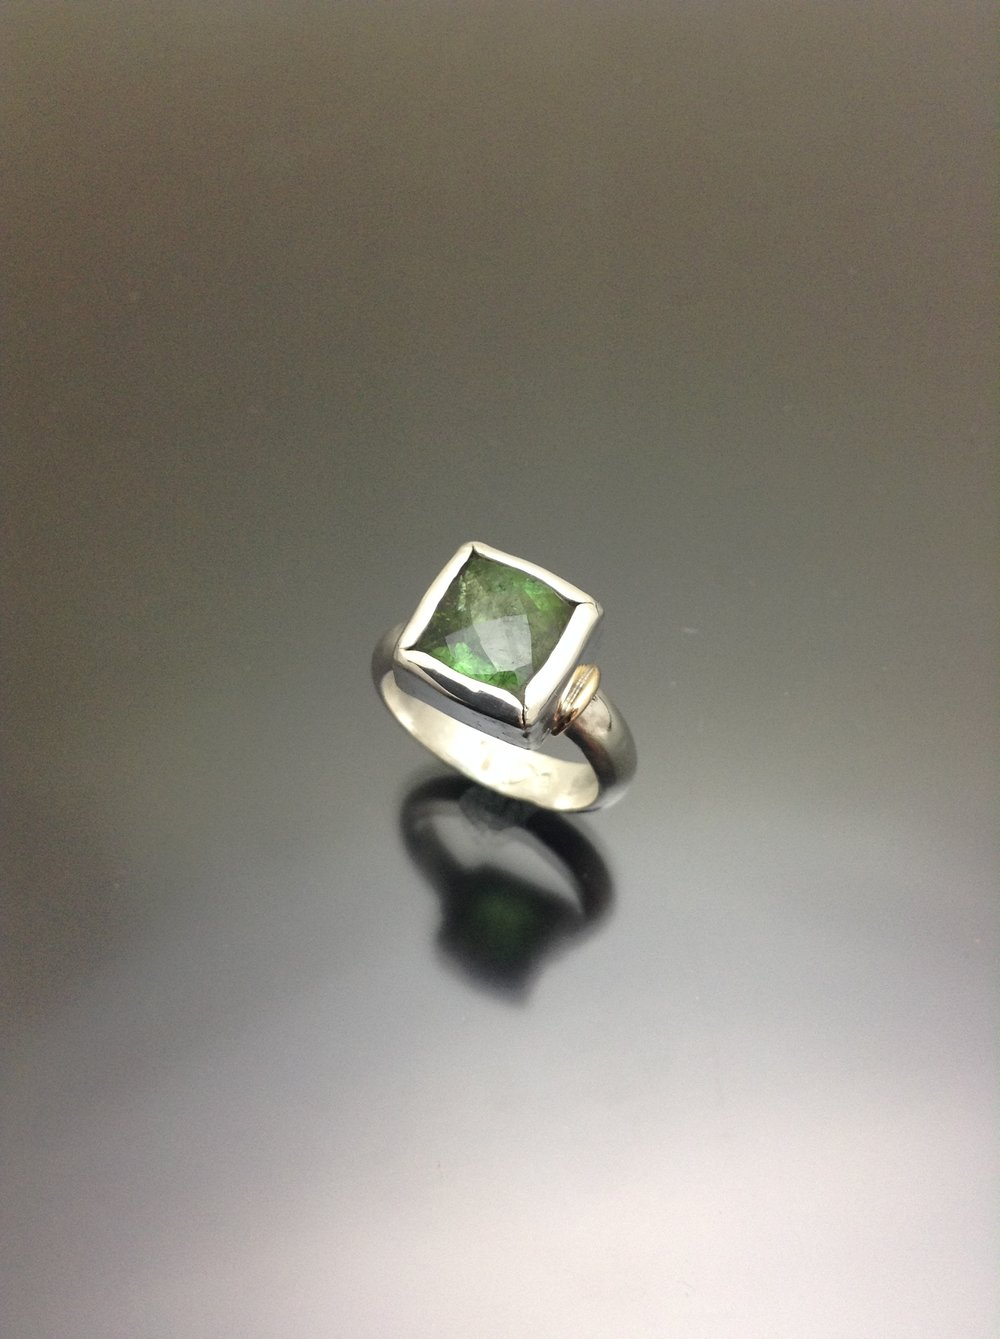 Green tourmaline ring silver and gold.JPG